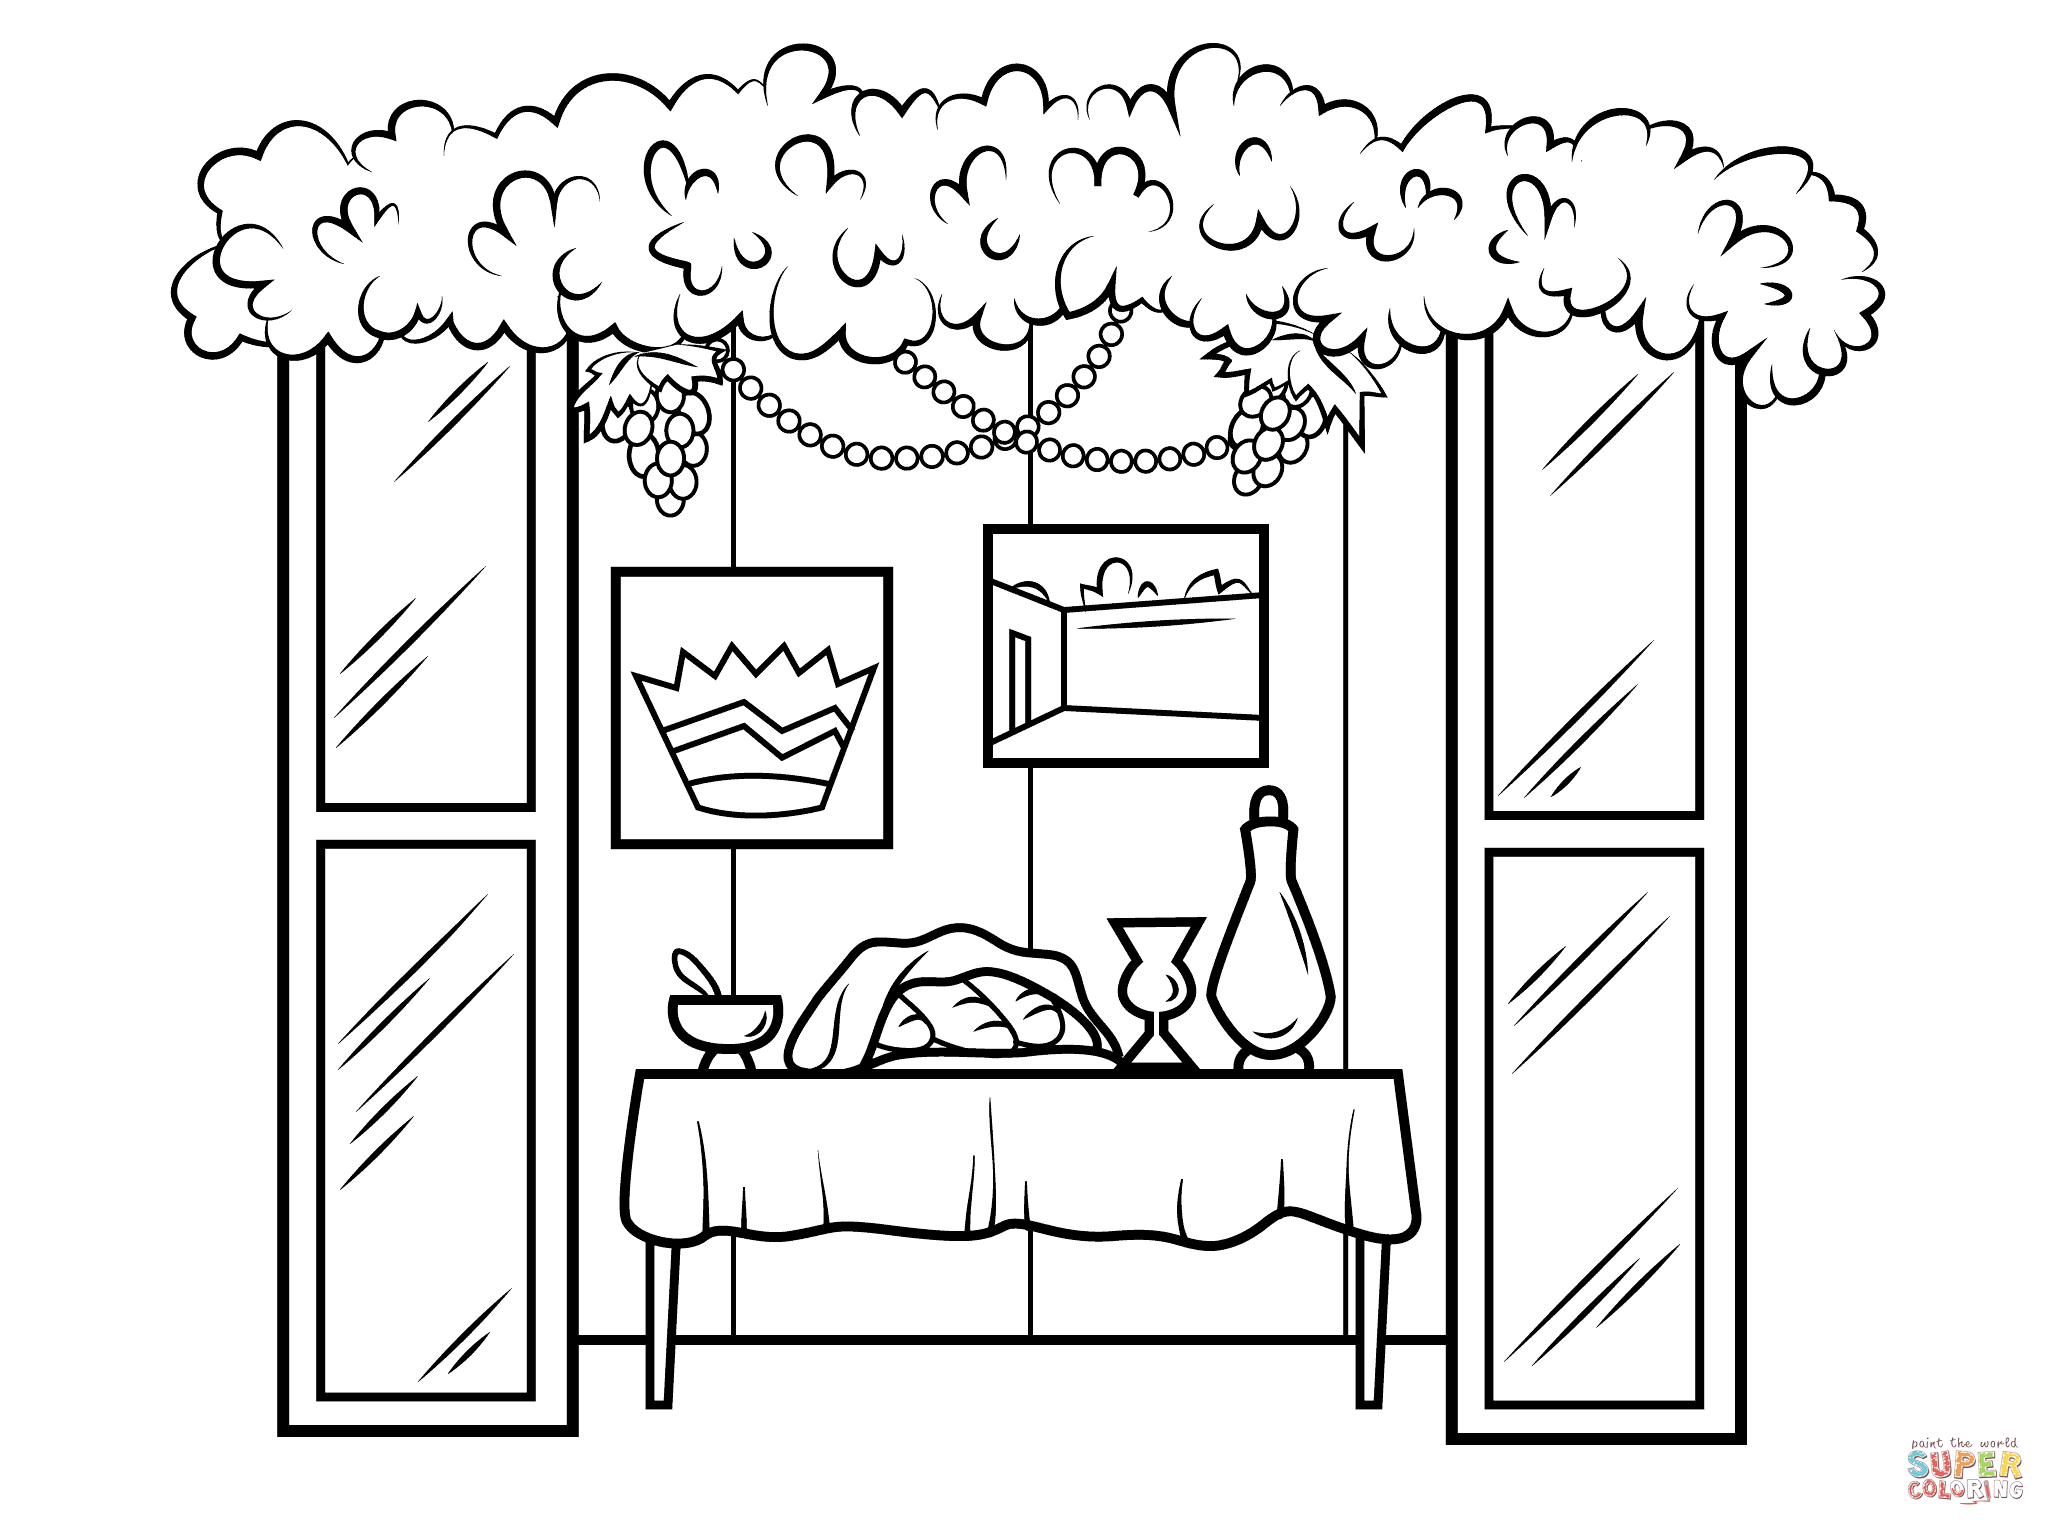 Sukkah For Sukkot Coloring Page From Category Select 27278 Printable Crafts Of Cartoons Nature Animals Bible And Many More Jewish